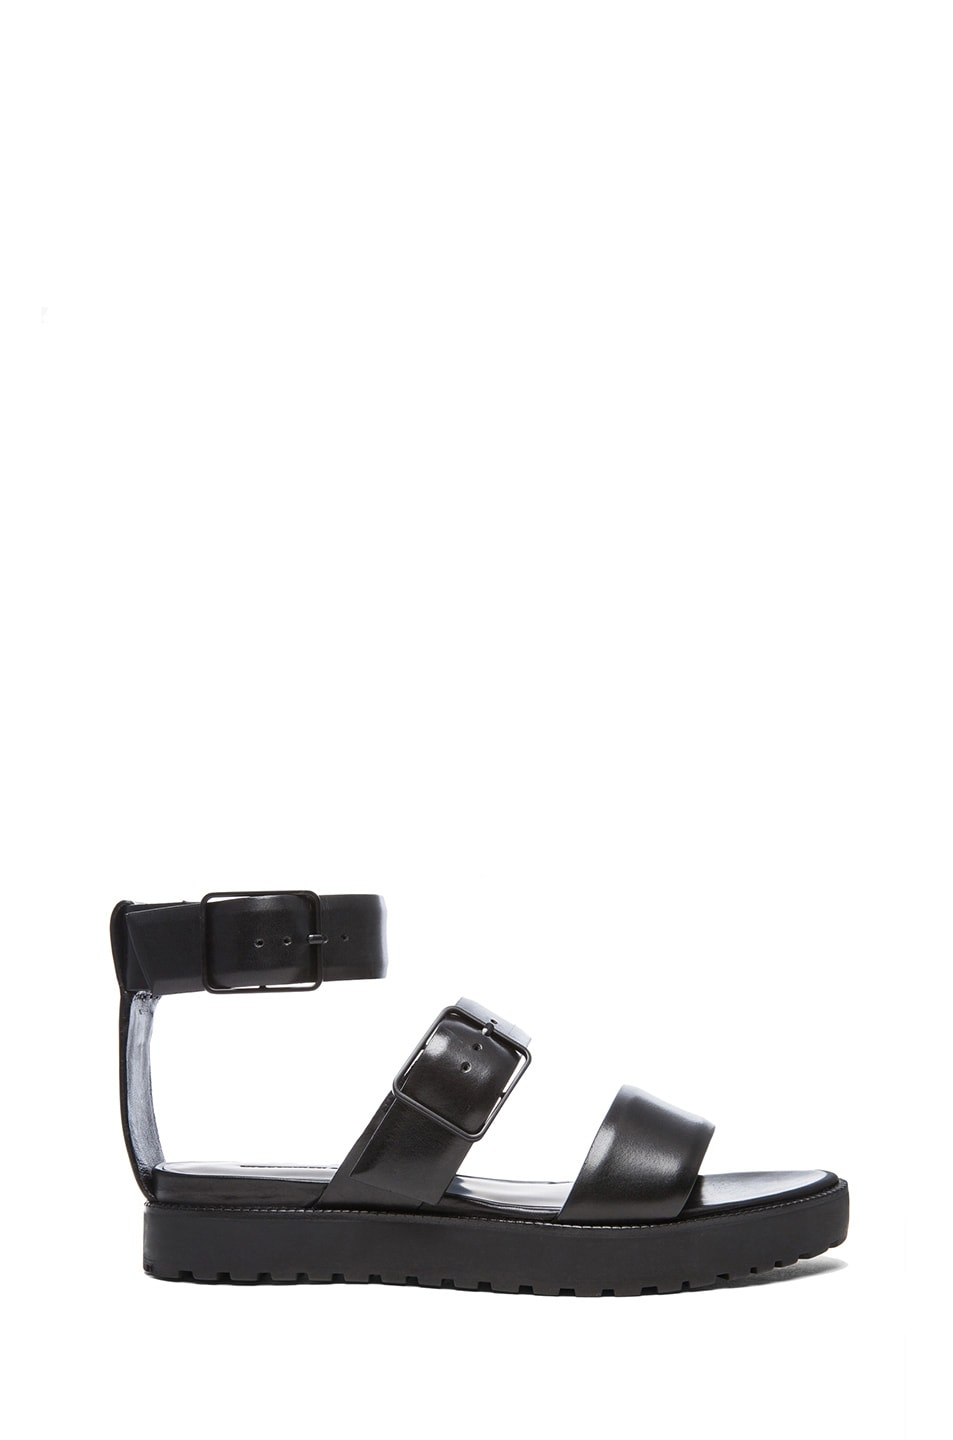 Image 1 of Alexander Wang Kira Ankle Strap Calfskin Sandals in Black